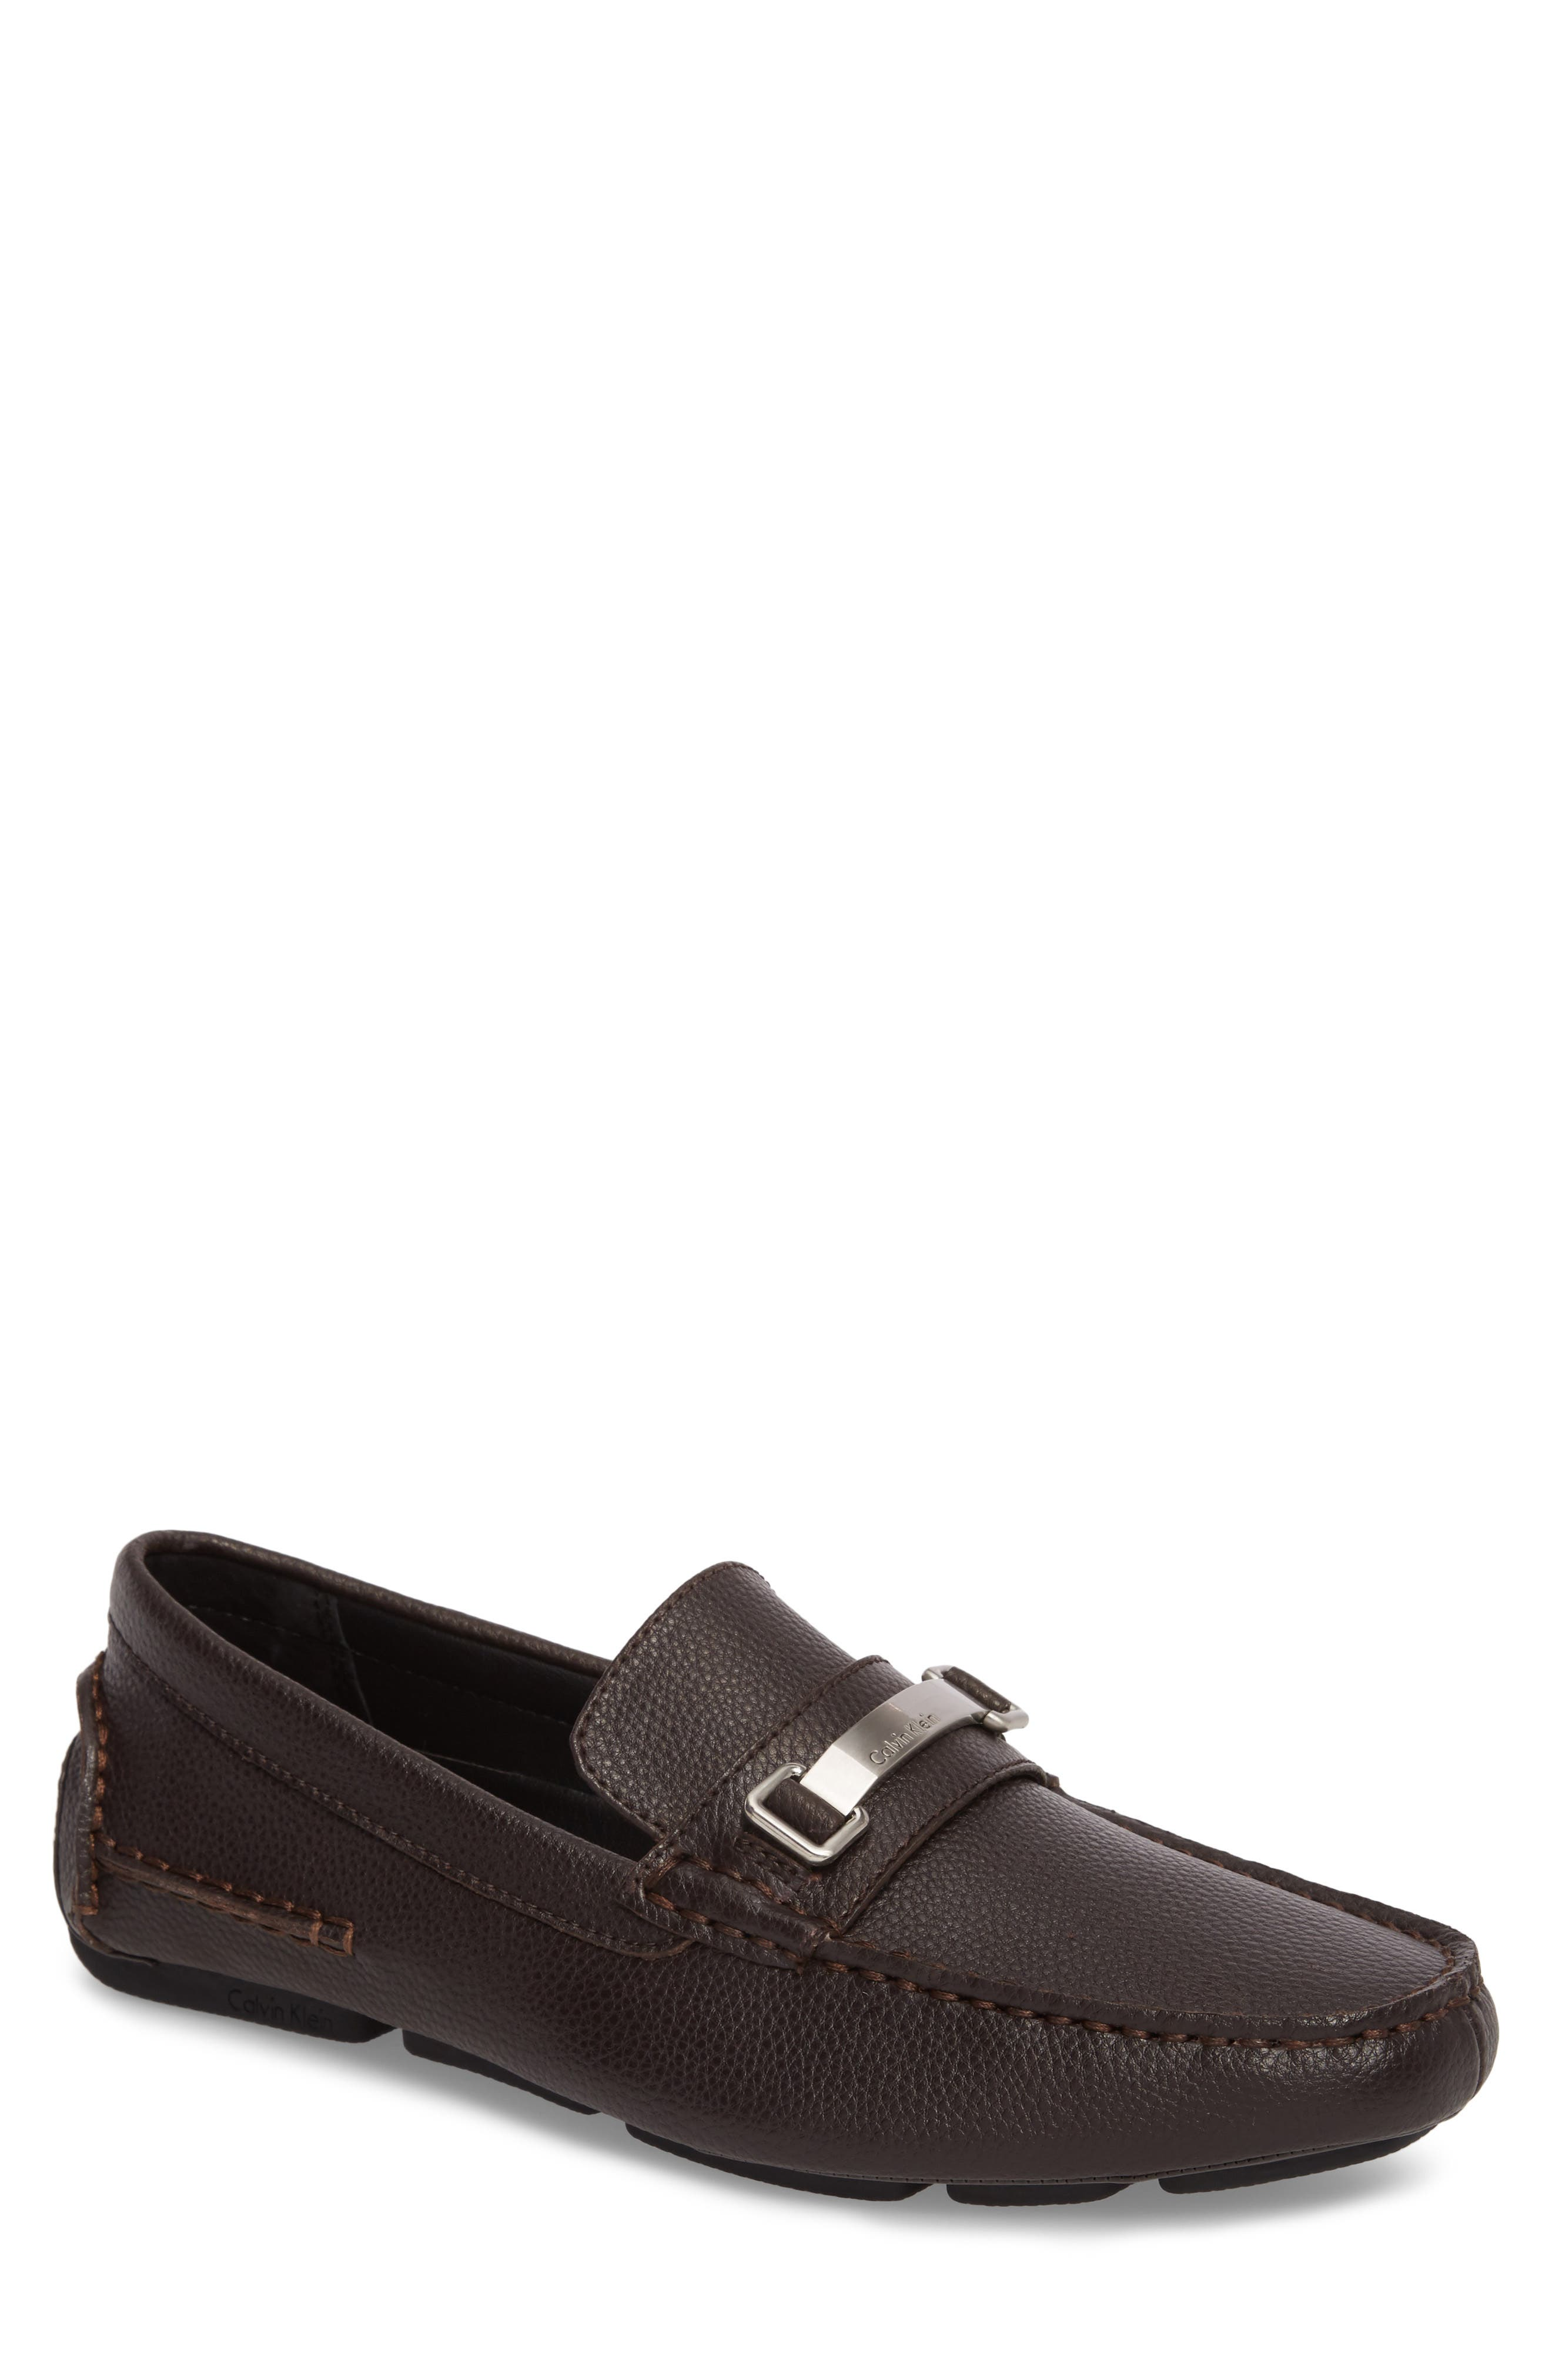 Mikos Driving Shoe,                             Main thumbnail 1, color,                             Dark Brown Leather